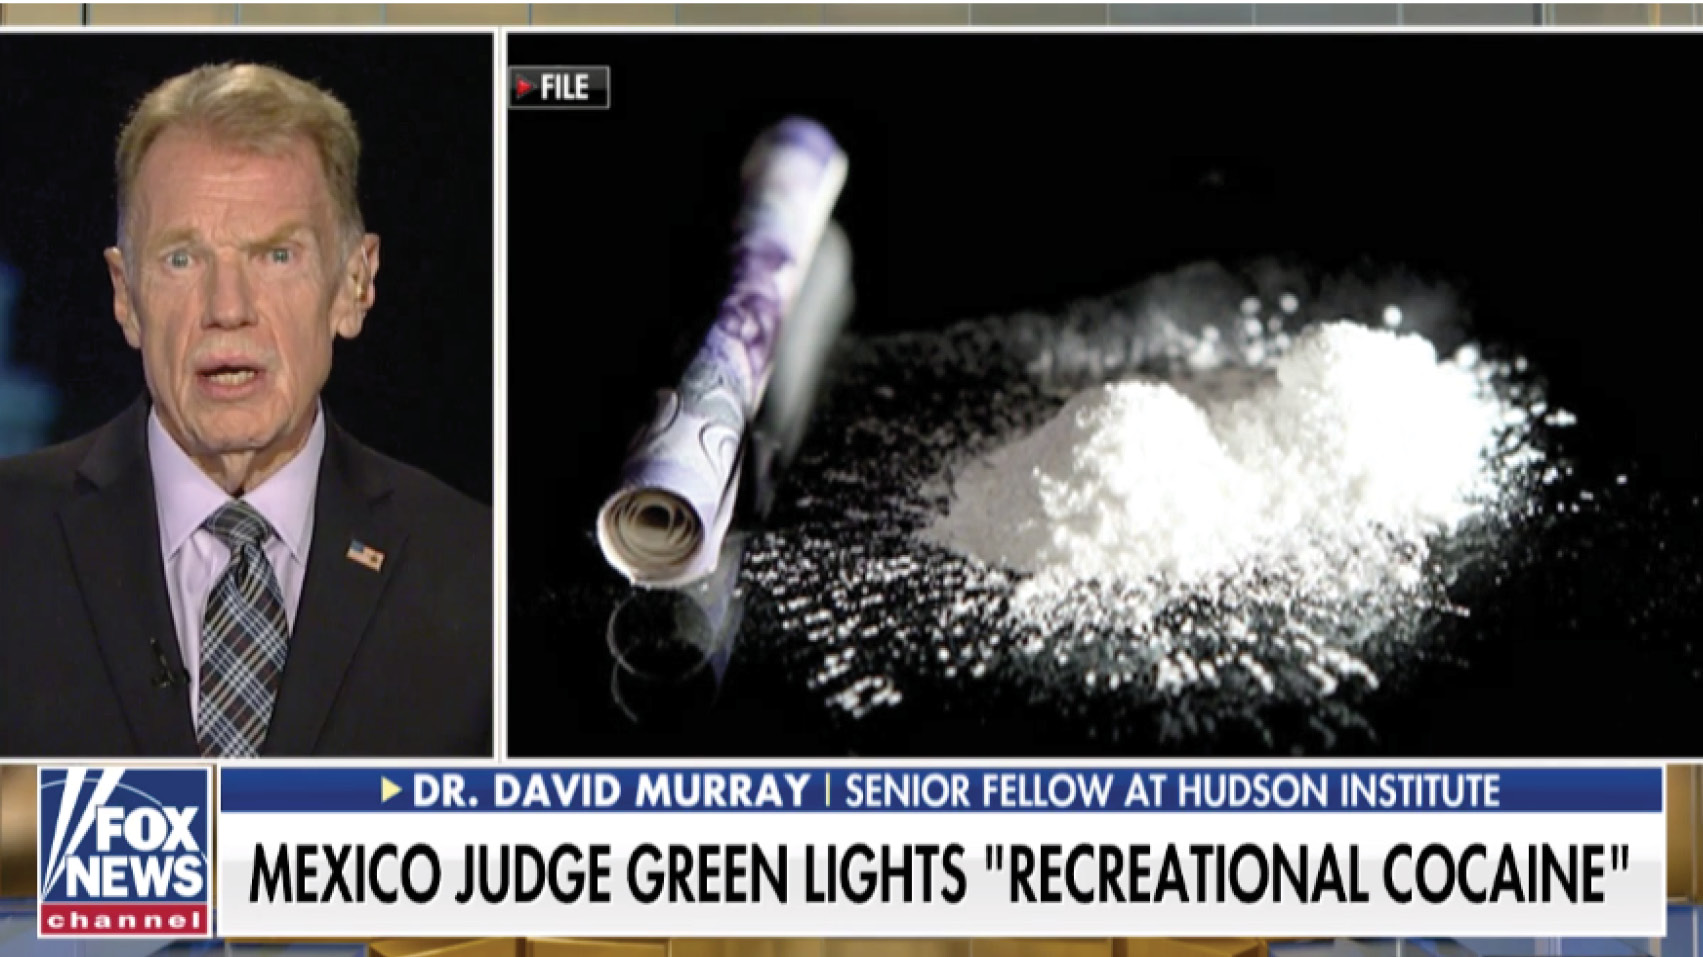 David Murray discusses the latest ruling from a judge in Mexico, who gave the green light to recreational cocaine, saying the drug laws are ineffective.